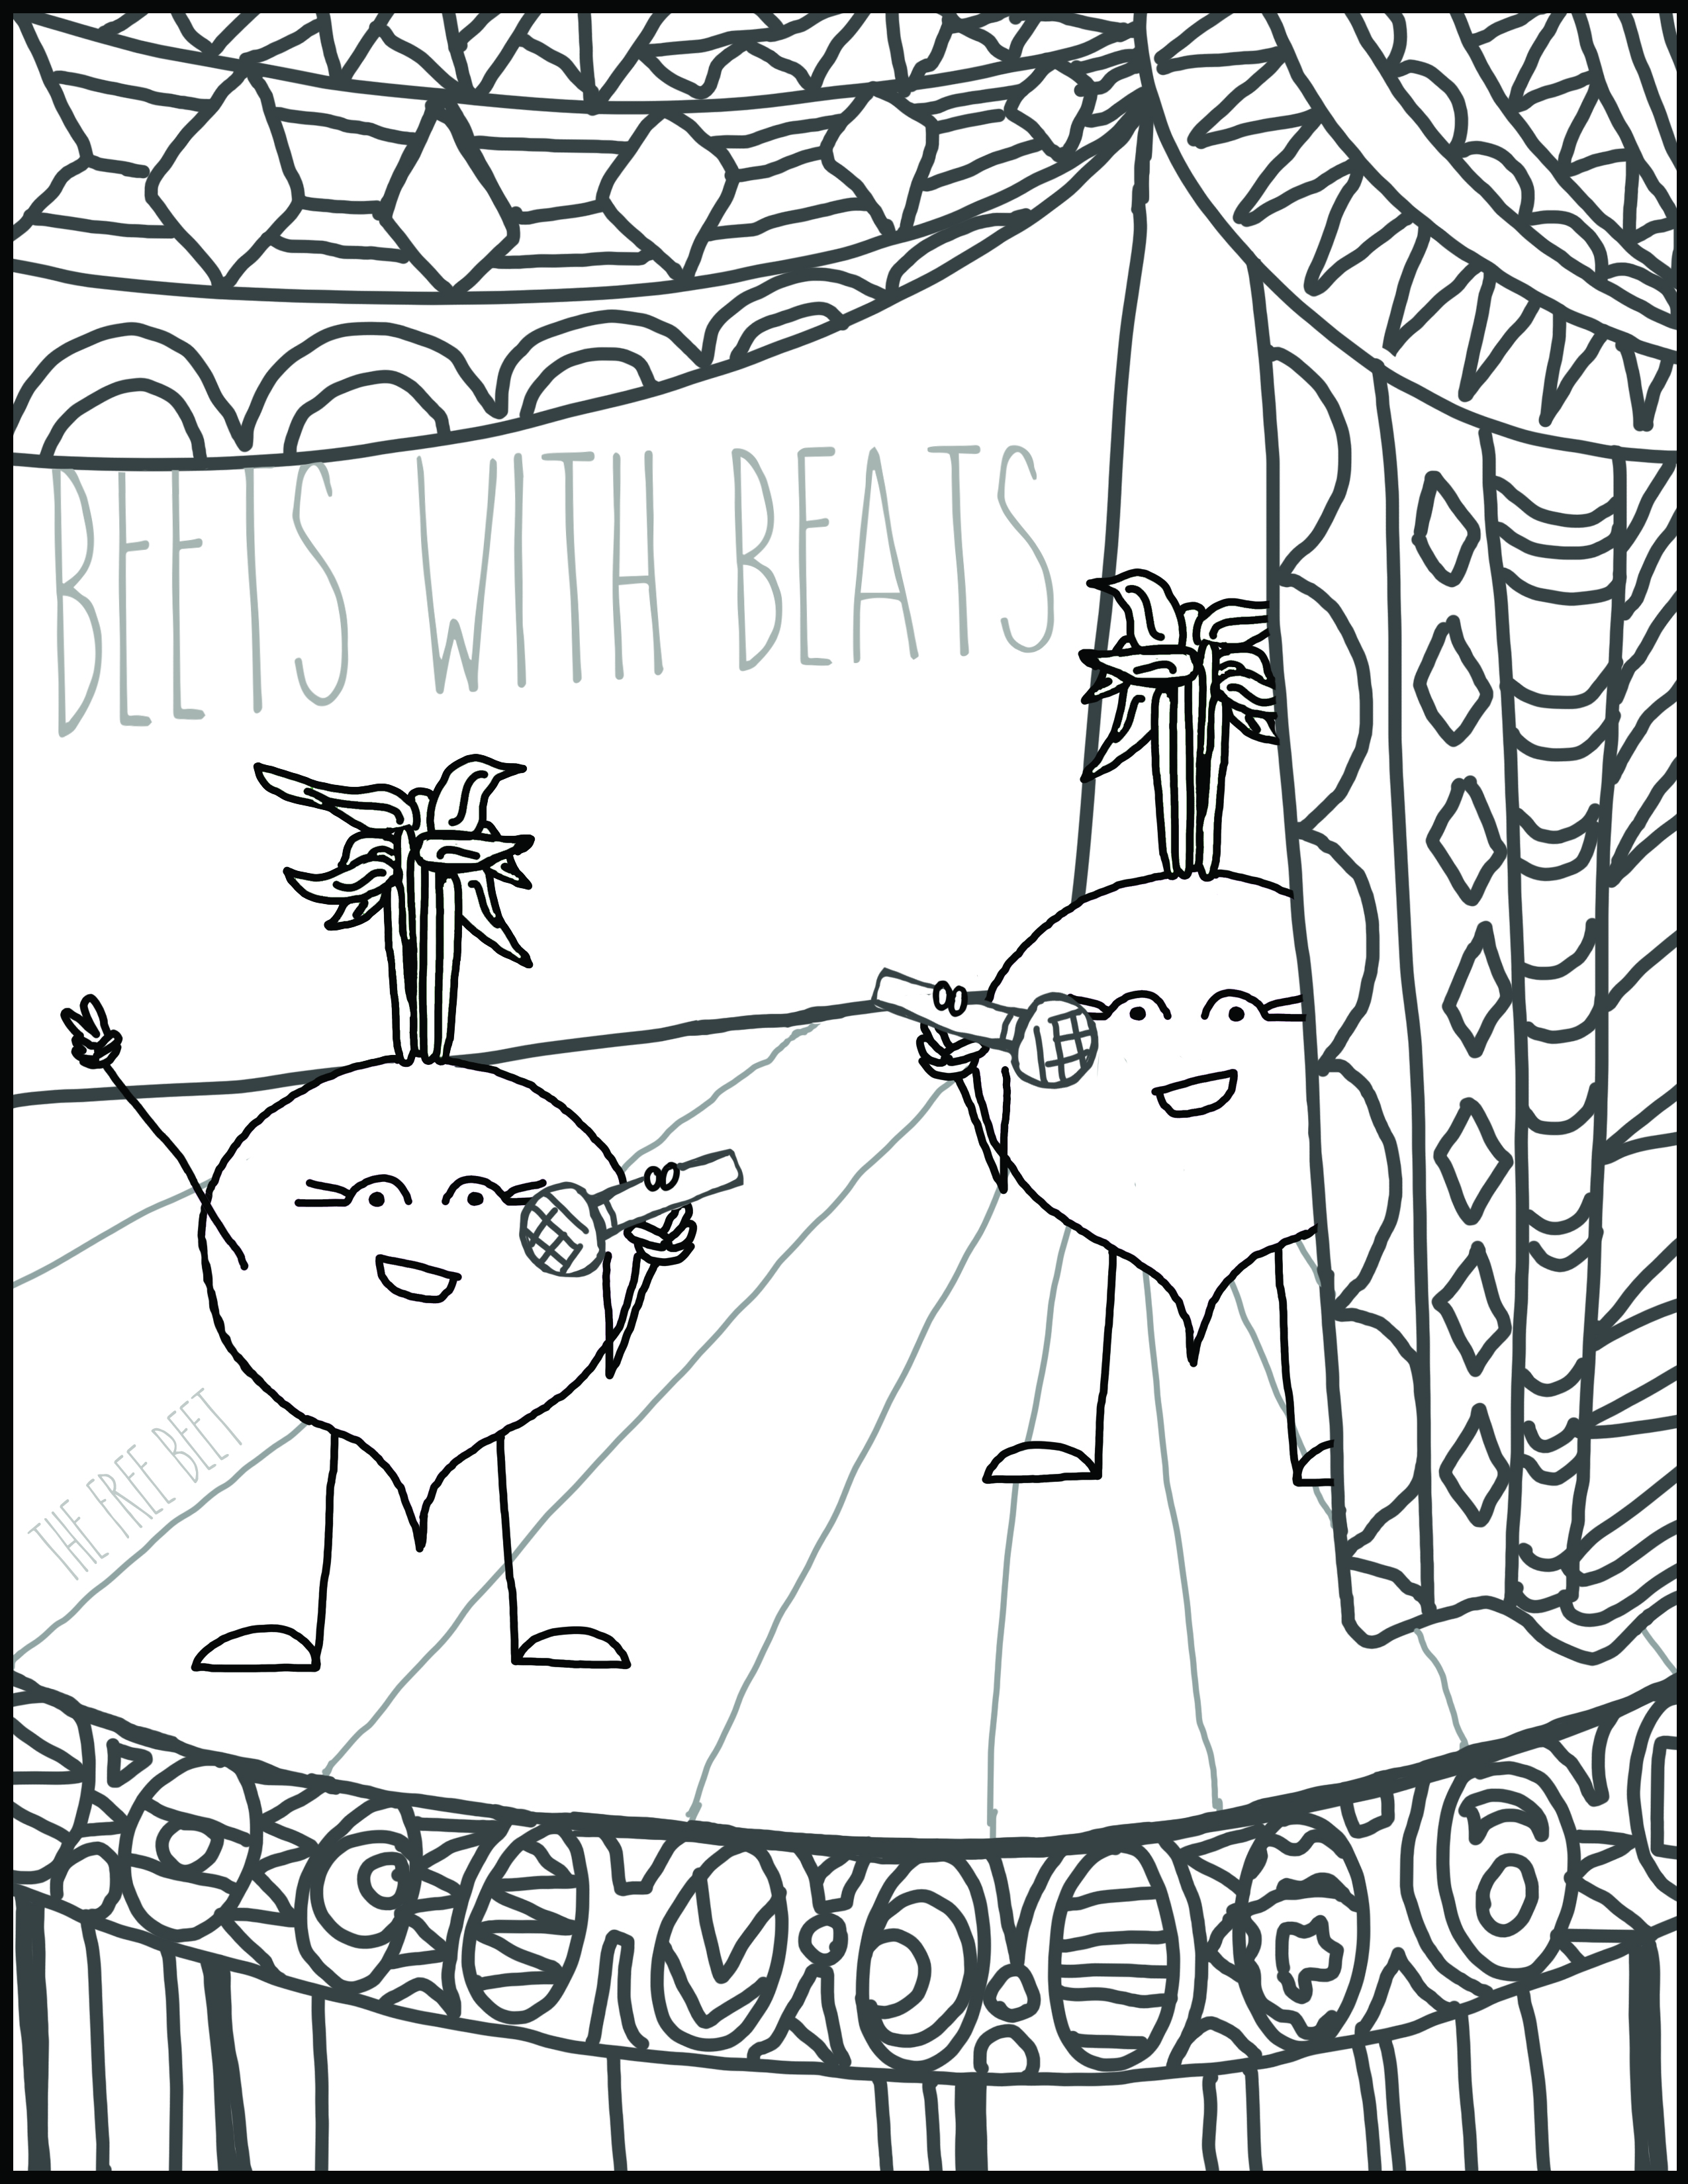 Free Coloring Page Beets With Beats